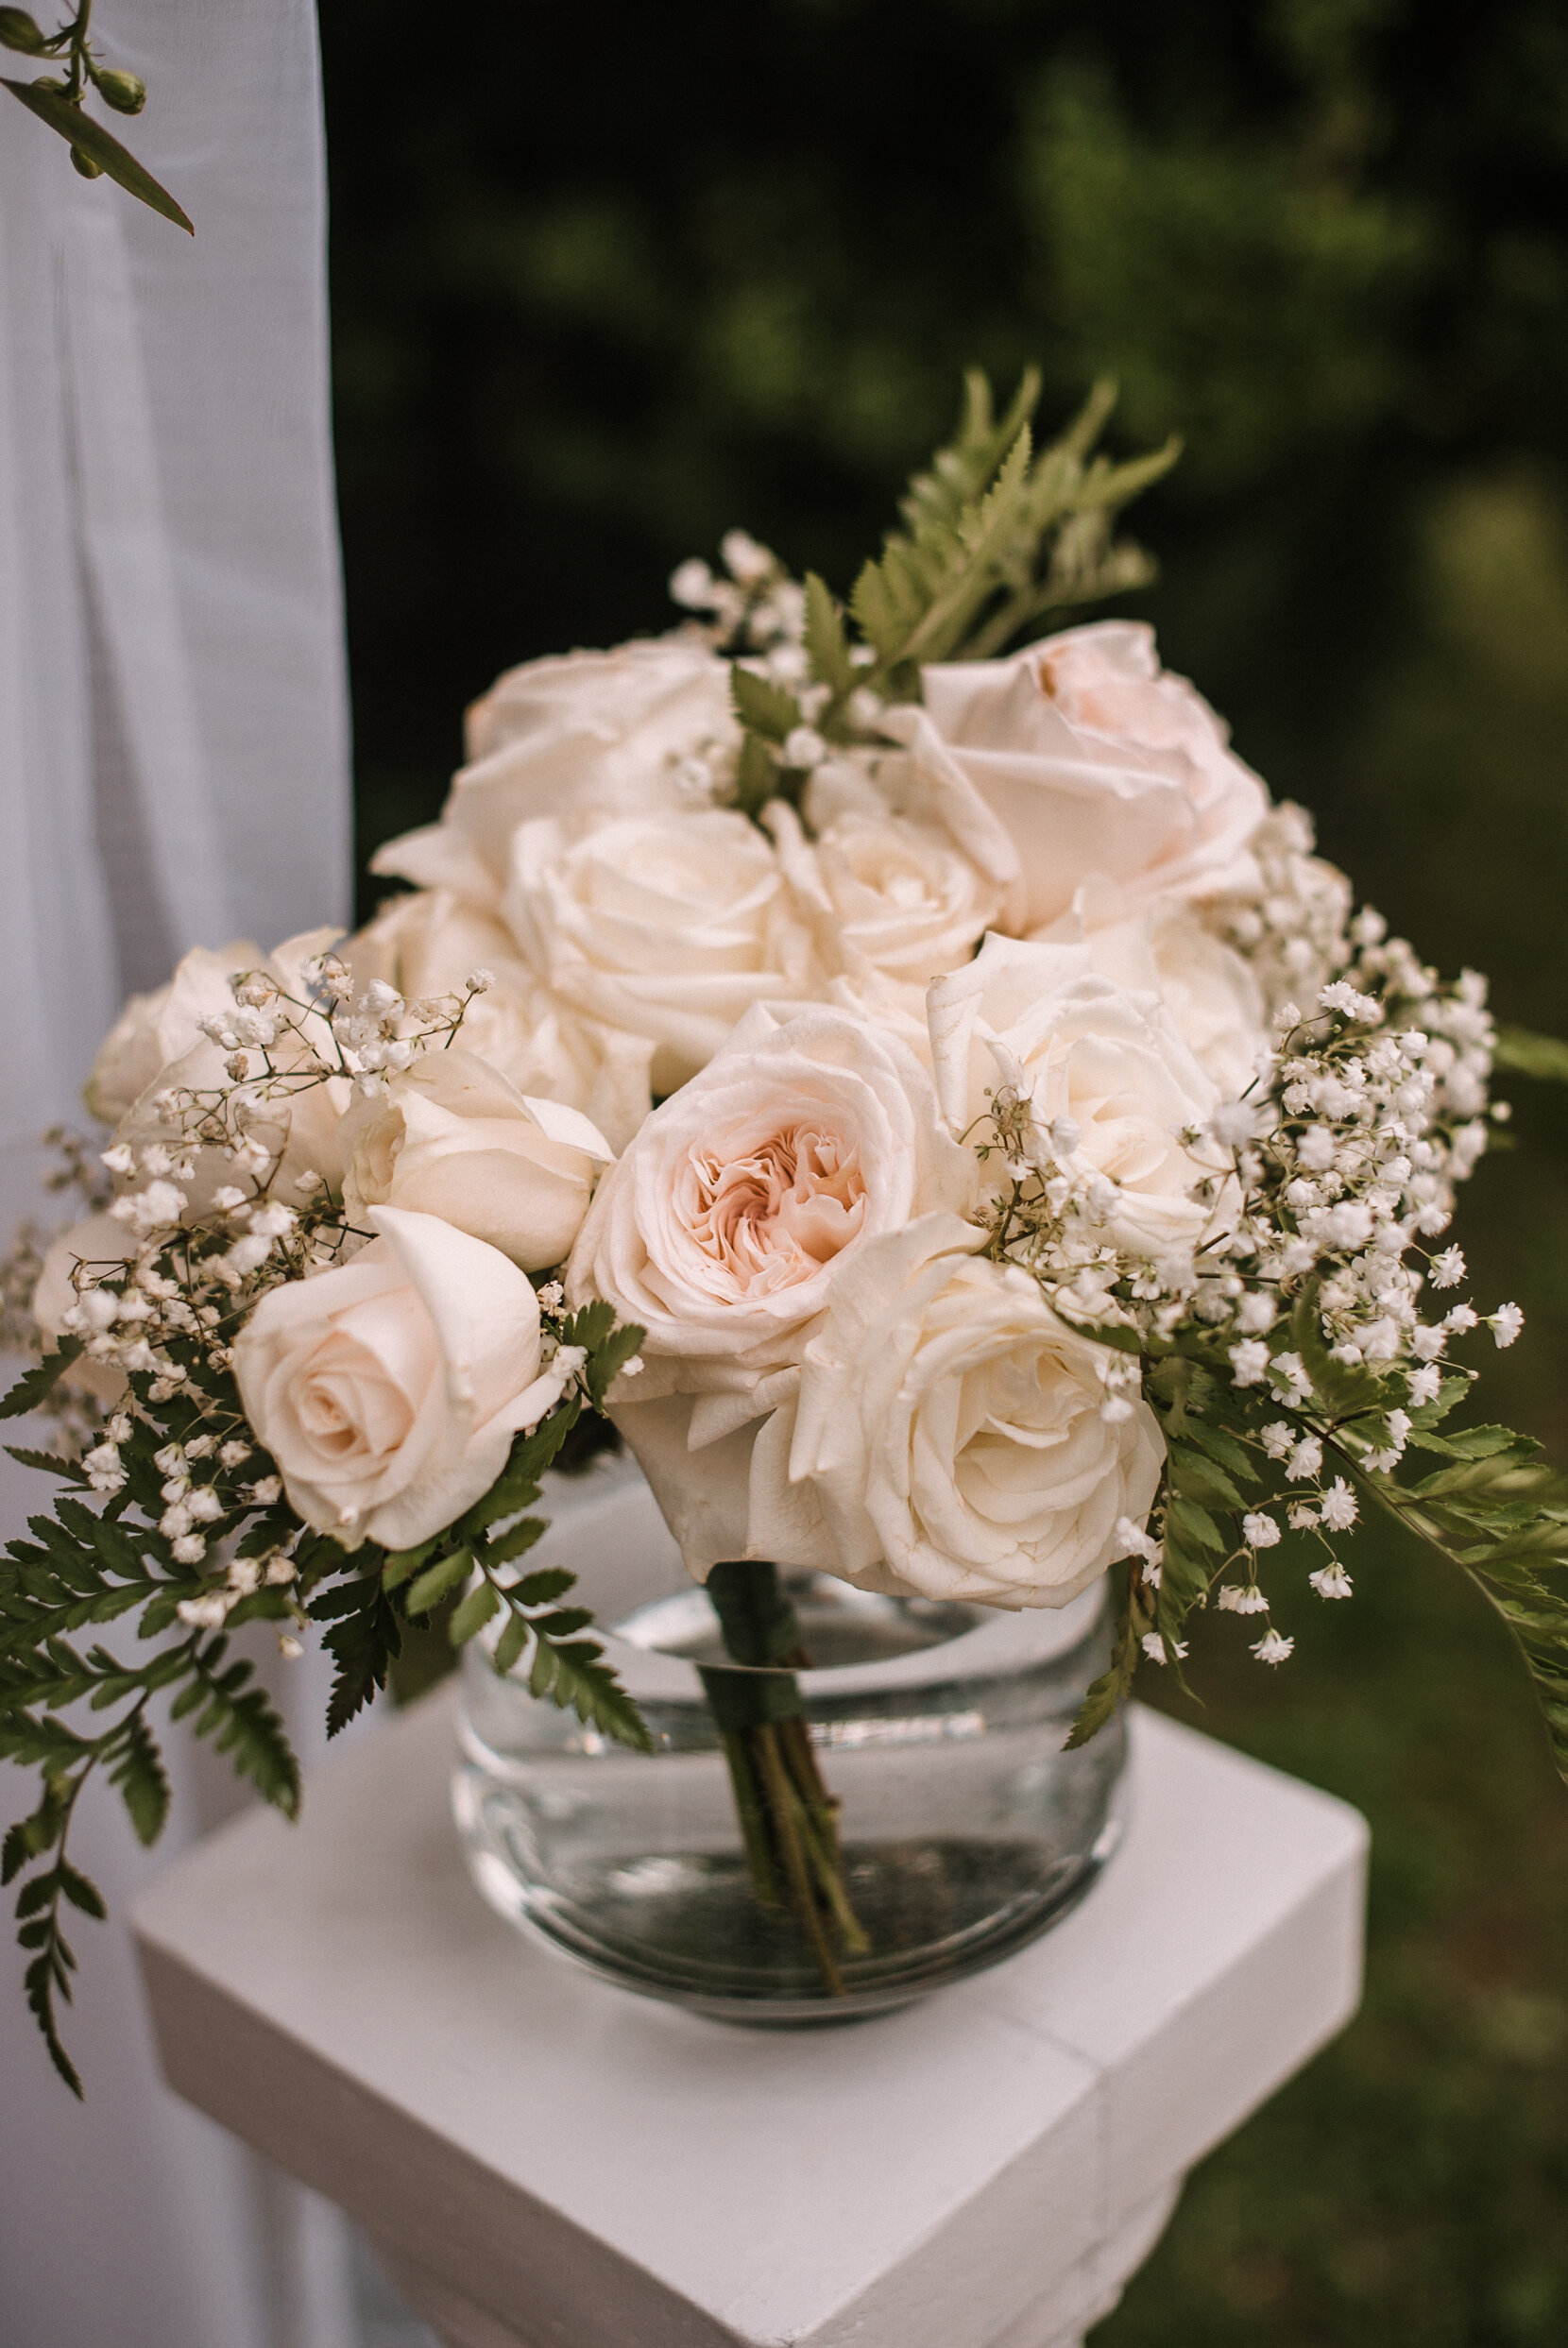 ceremony flowers at Rust Manor House